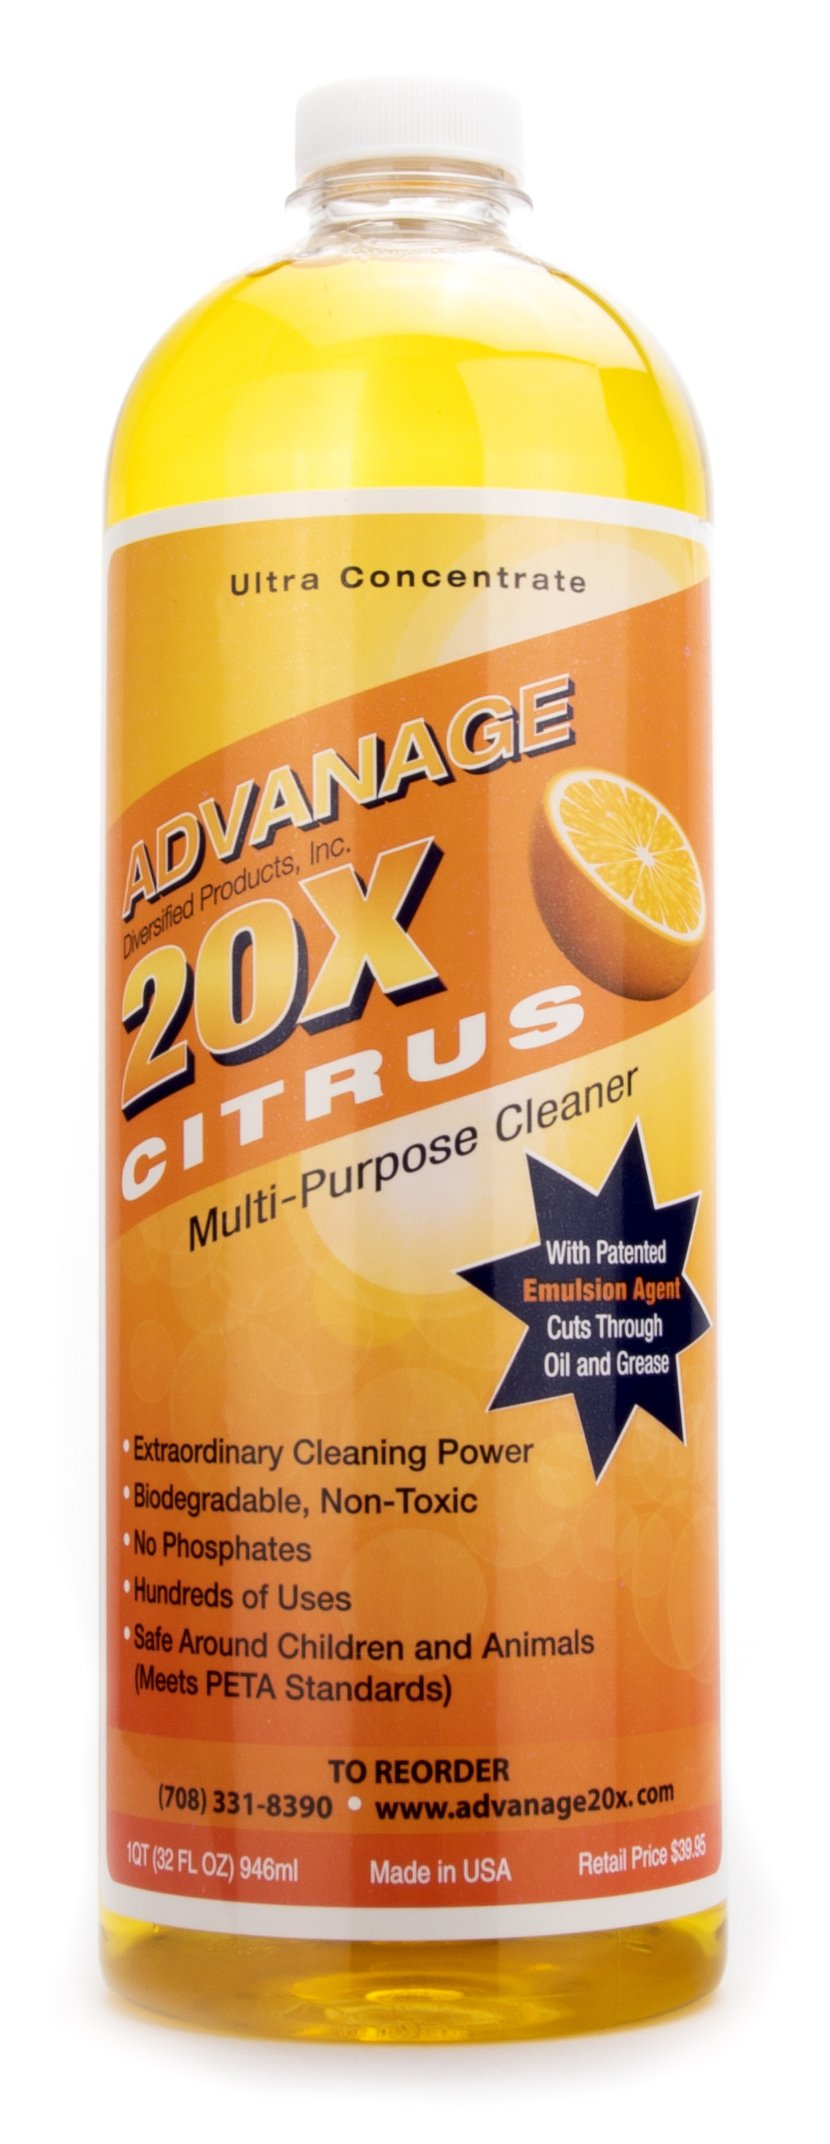 ADVANAGE the Wonder Cleaner 20X Multi-Purpose   Ultra Concentrated Formula, Makes 20 Quarts   Eco Friendly   Child and Pet Safe   Non Toxic & Biodegradable   Citrus Scented   32 fl oz Bottle